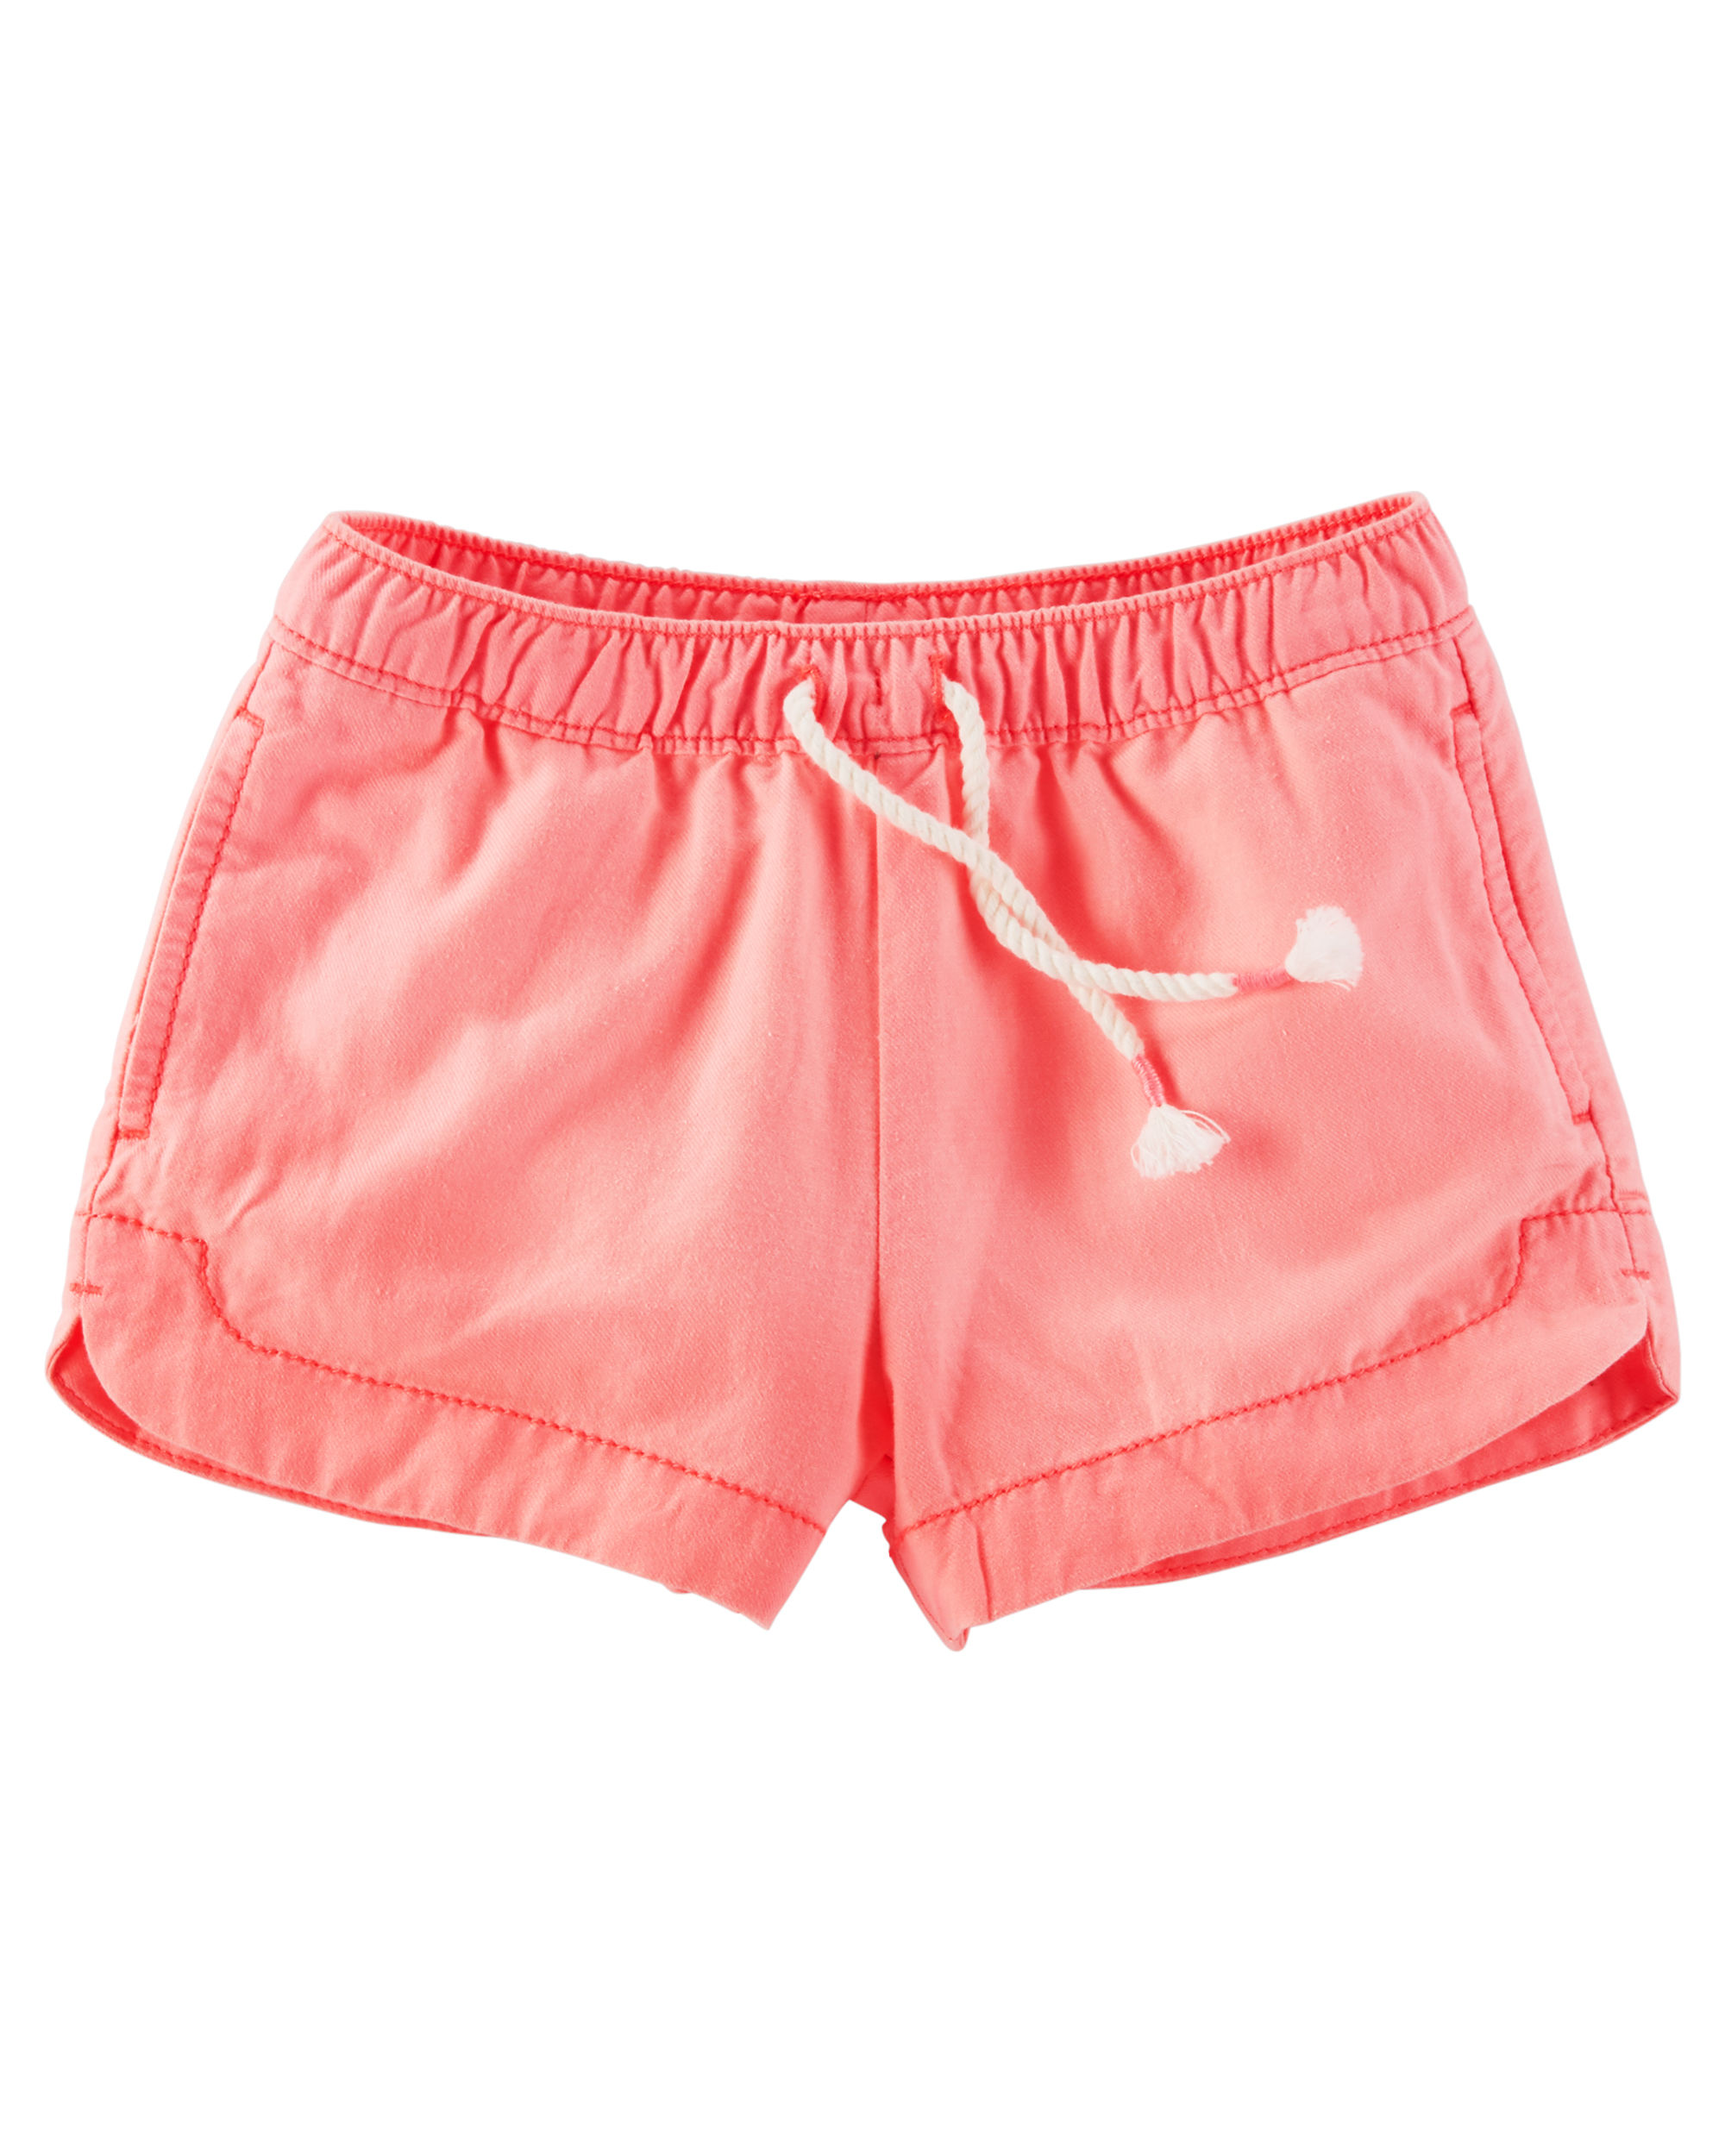 OshKosh B'gosh Baby Girls' Neon Sun Shorts, 18 Months